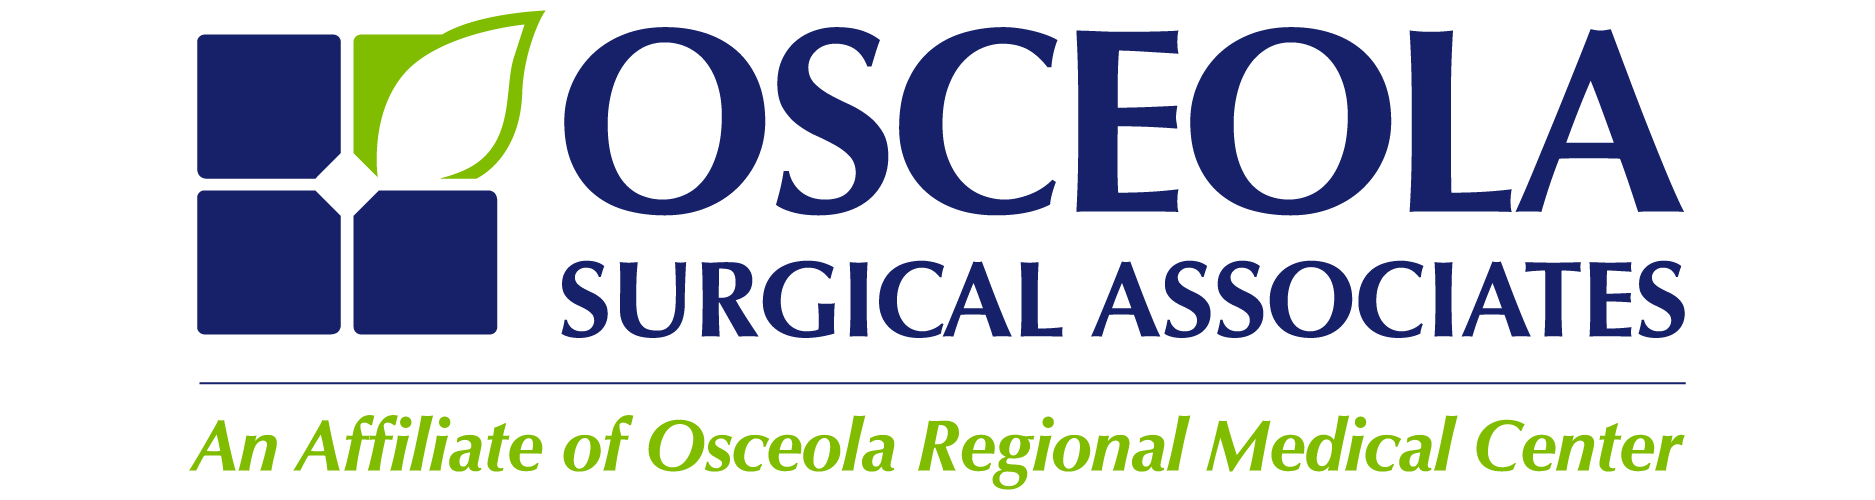 Osceola Surgical Associates